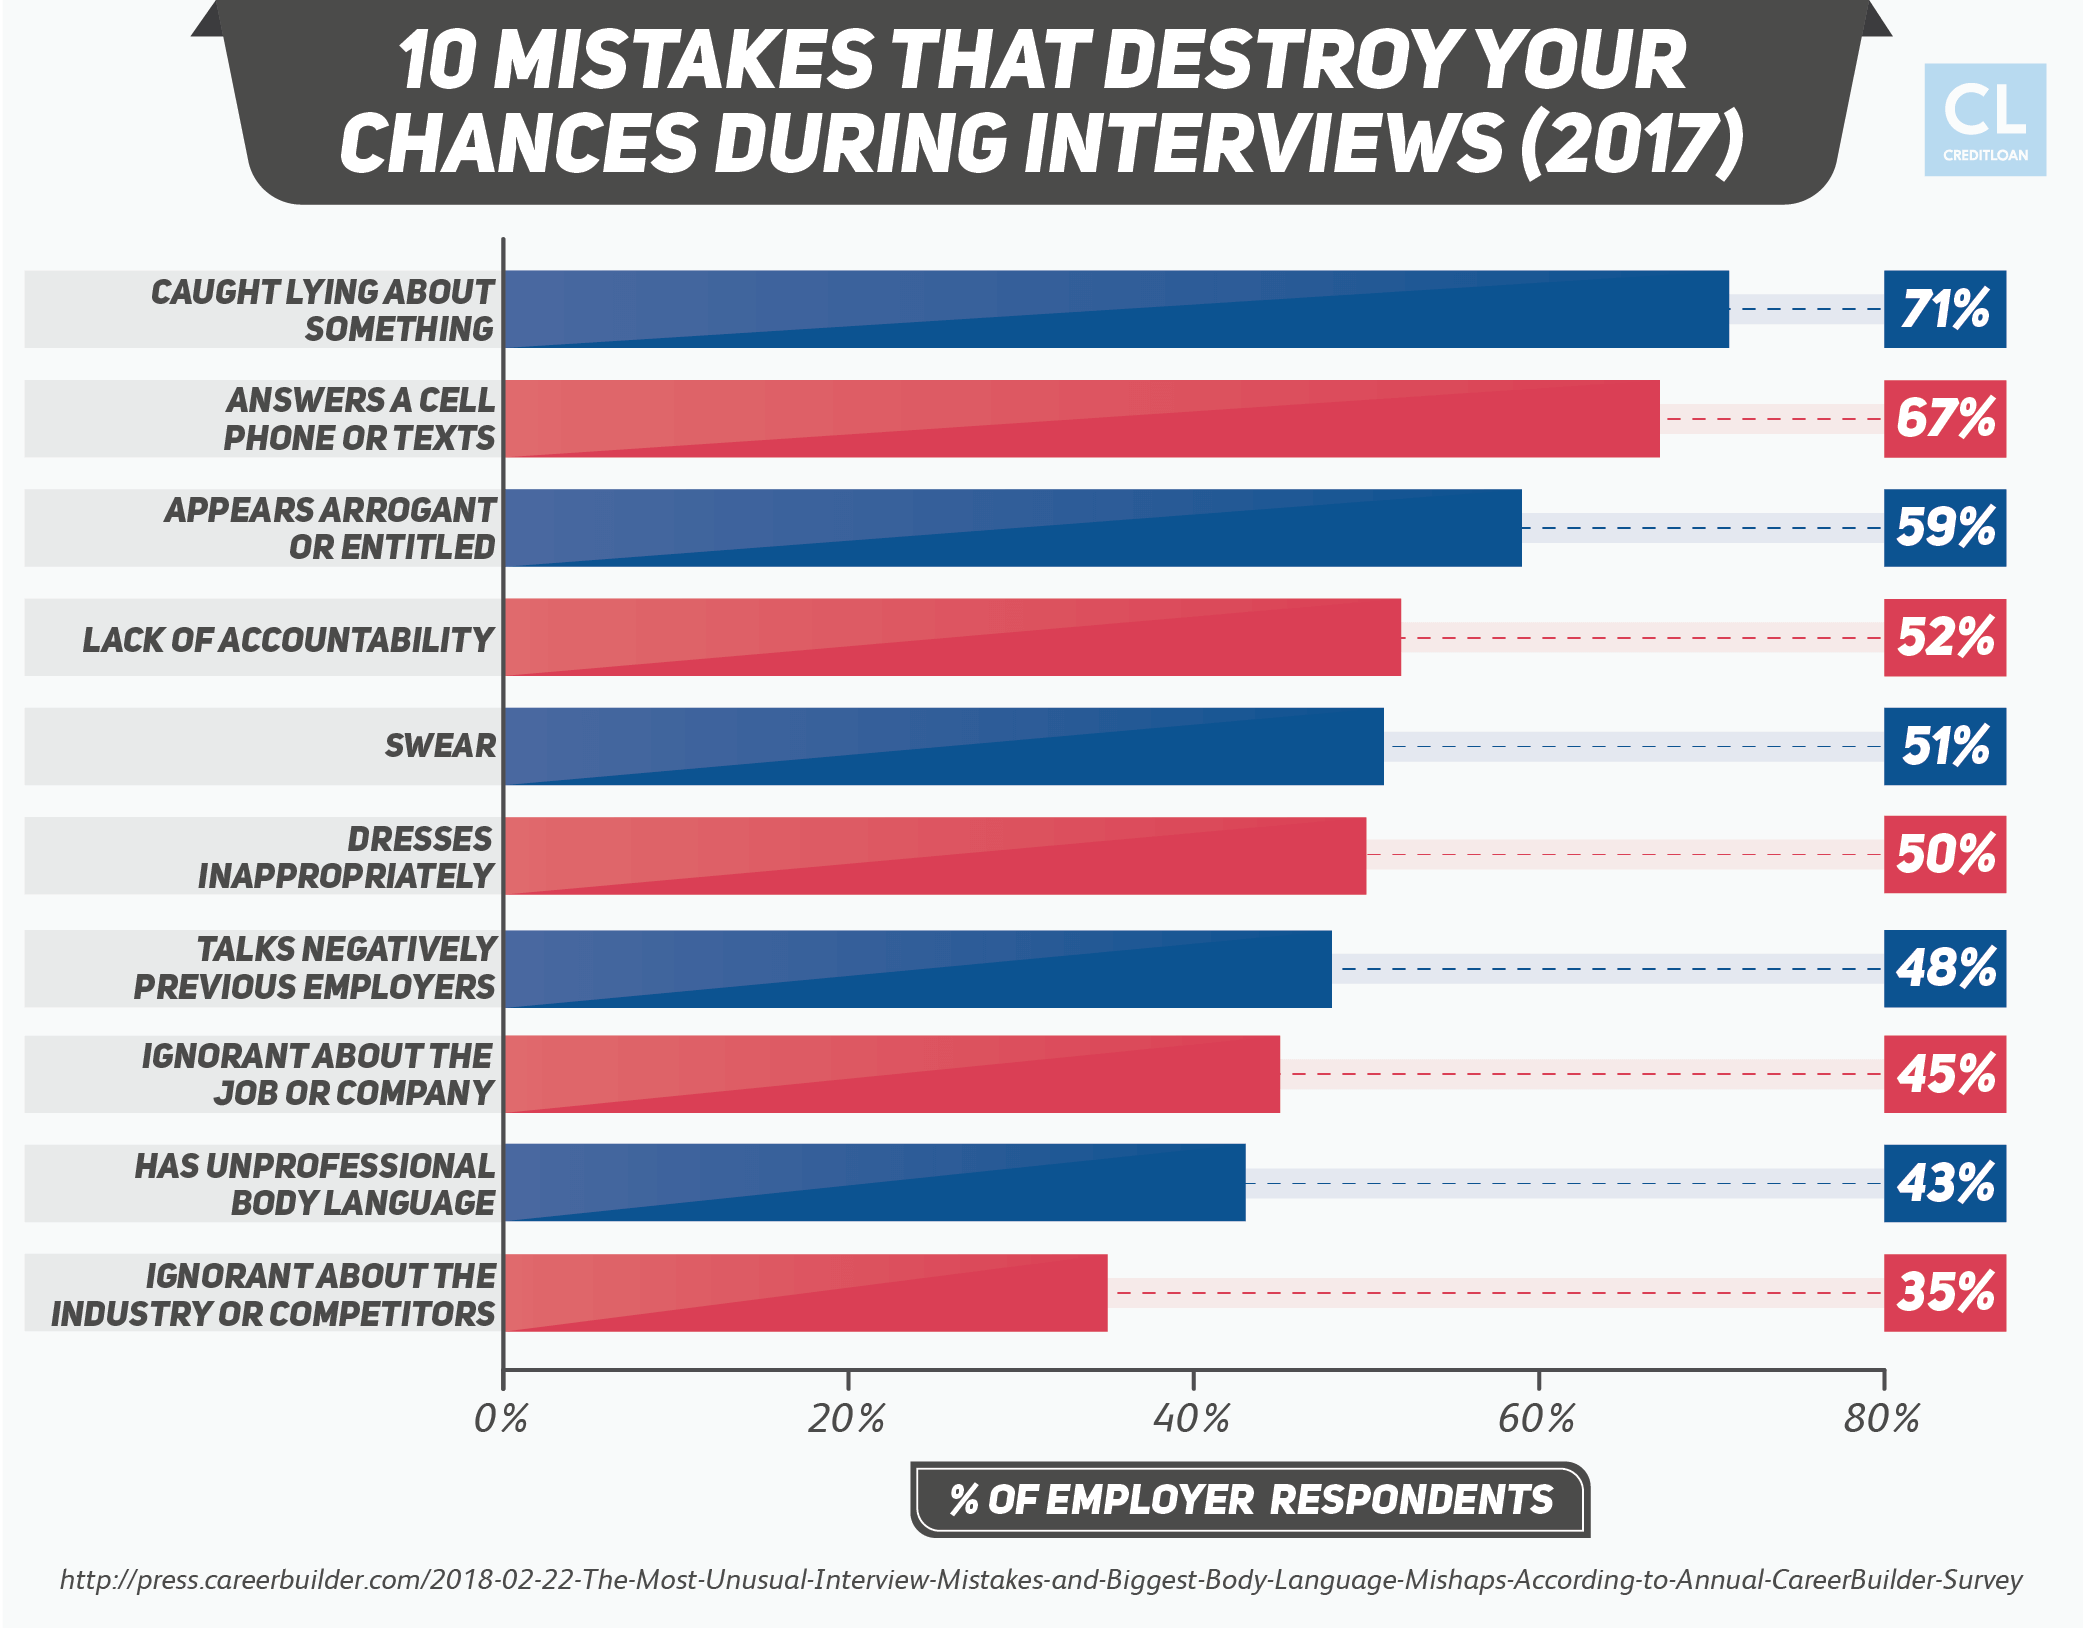 10 Mistakes That Destroy Your Chances During Interviews